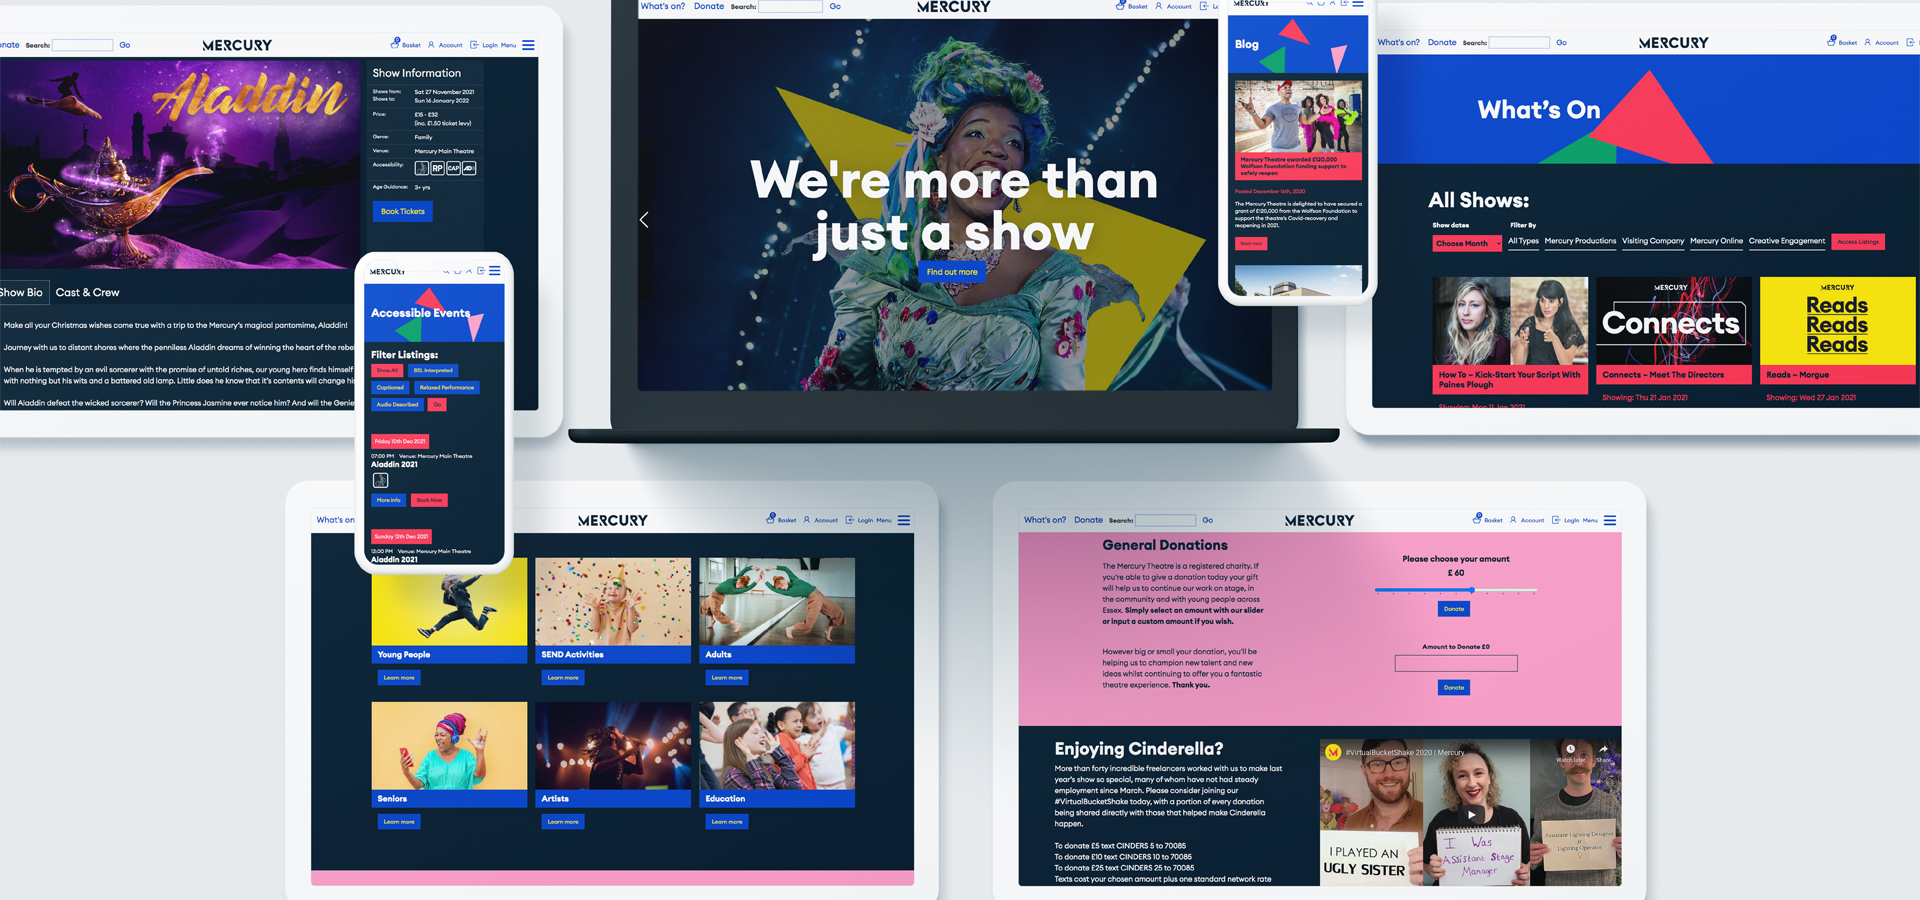 Images of the Mercury Theatre website designed by Splitpixel